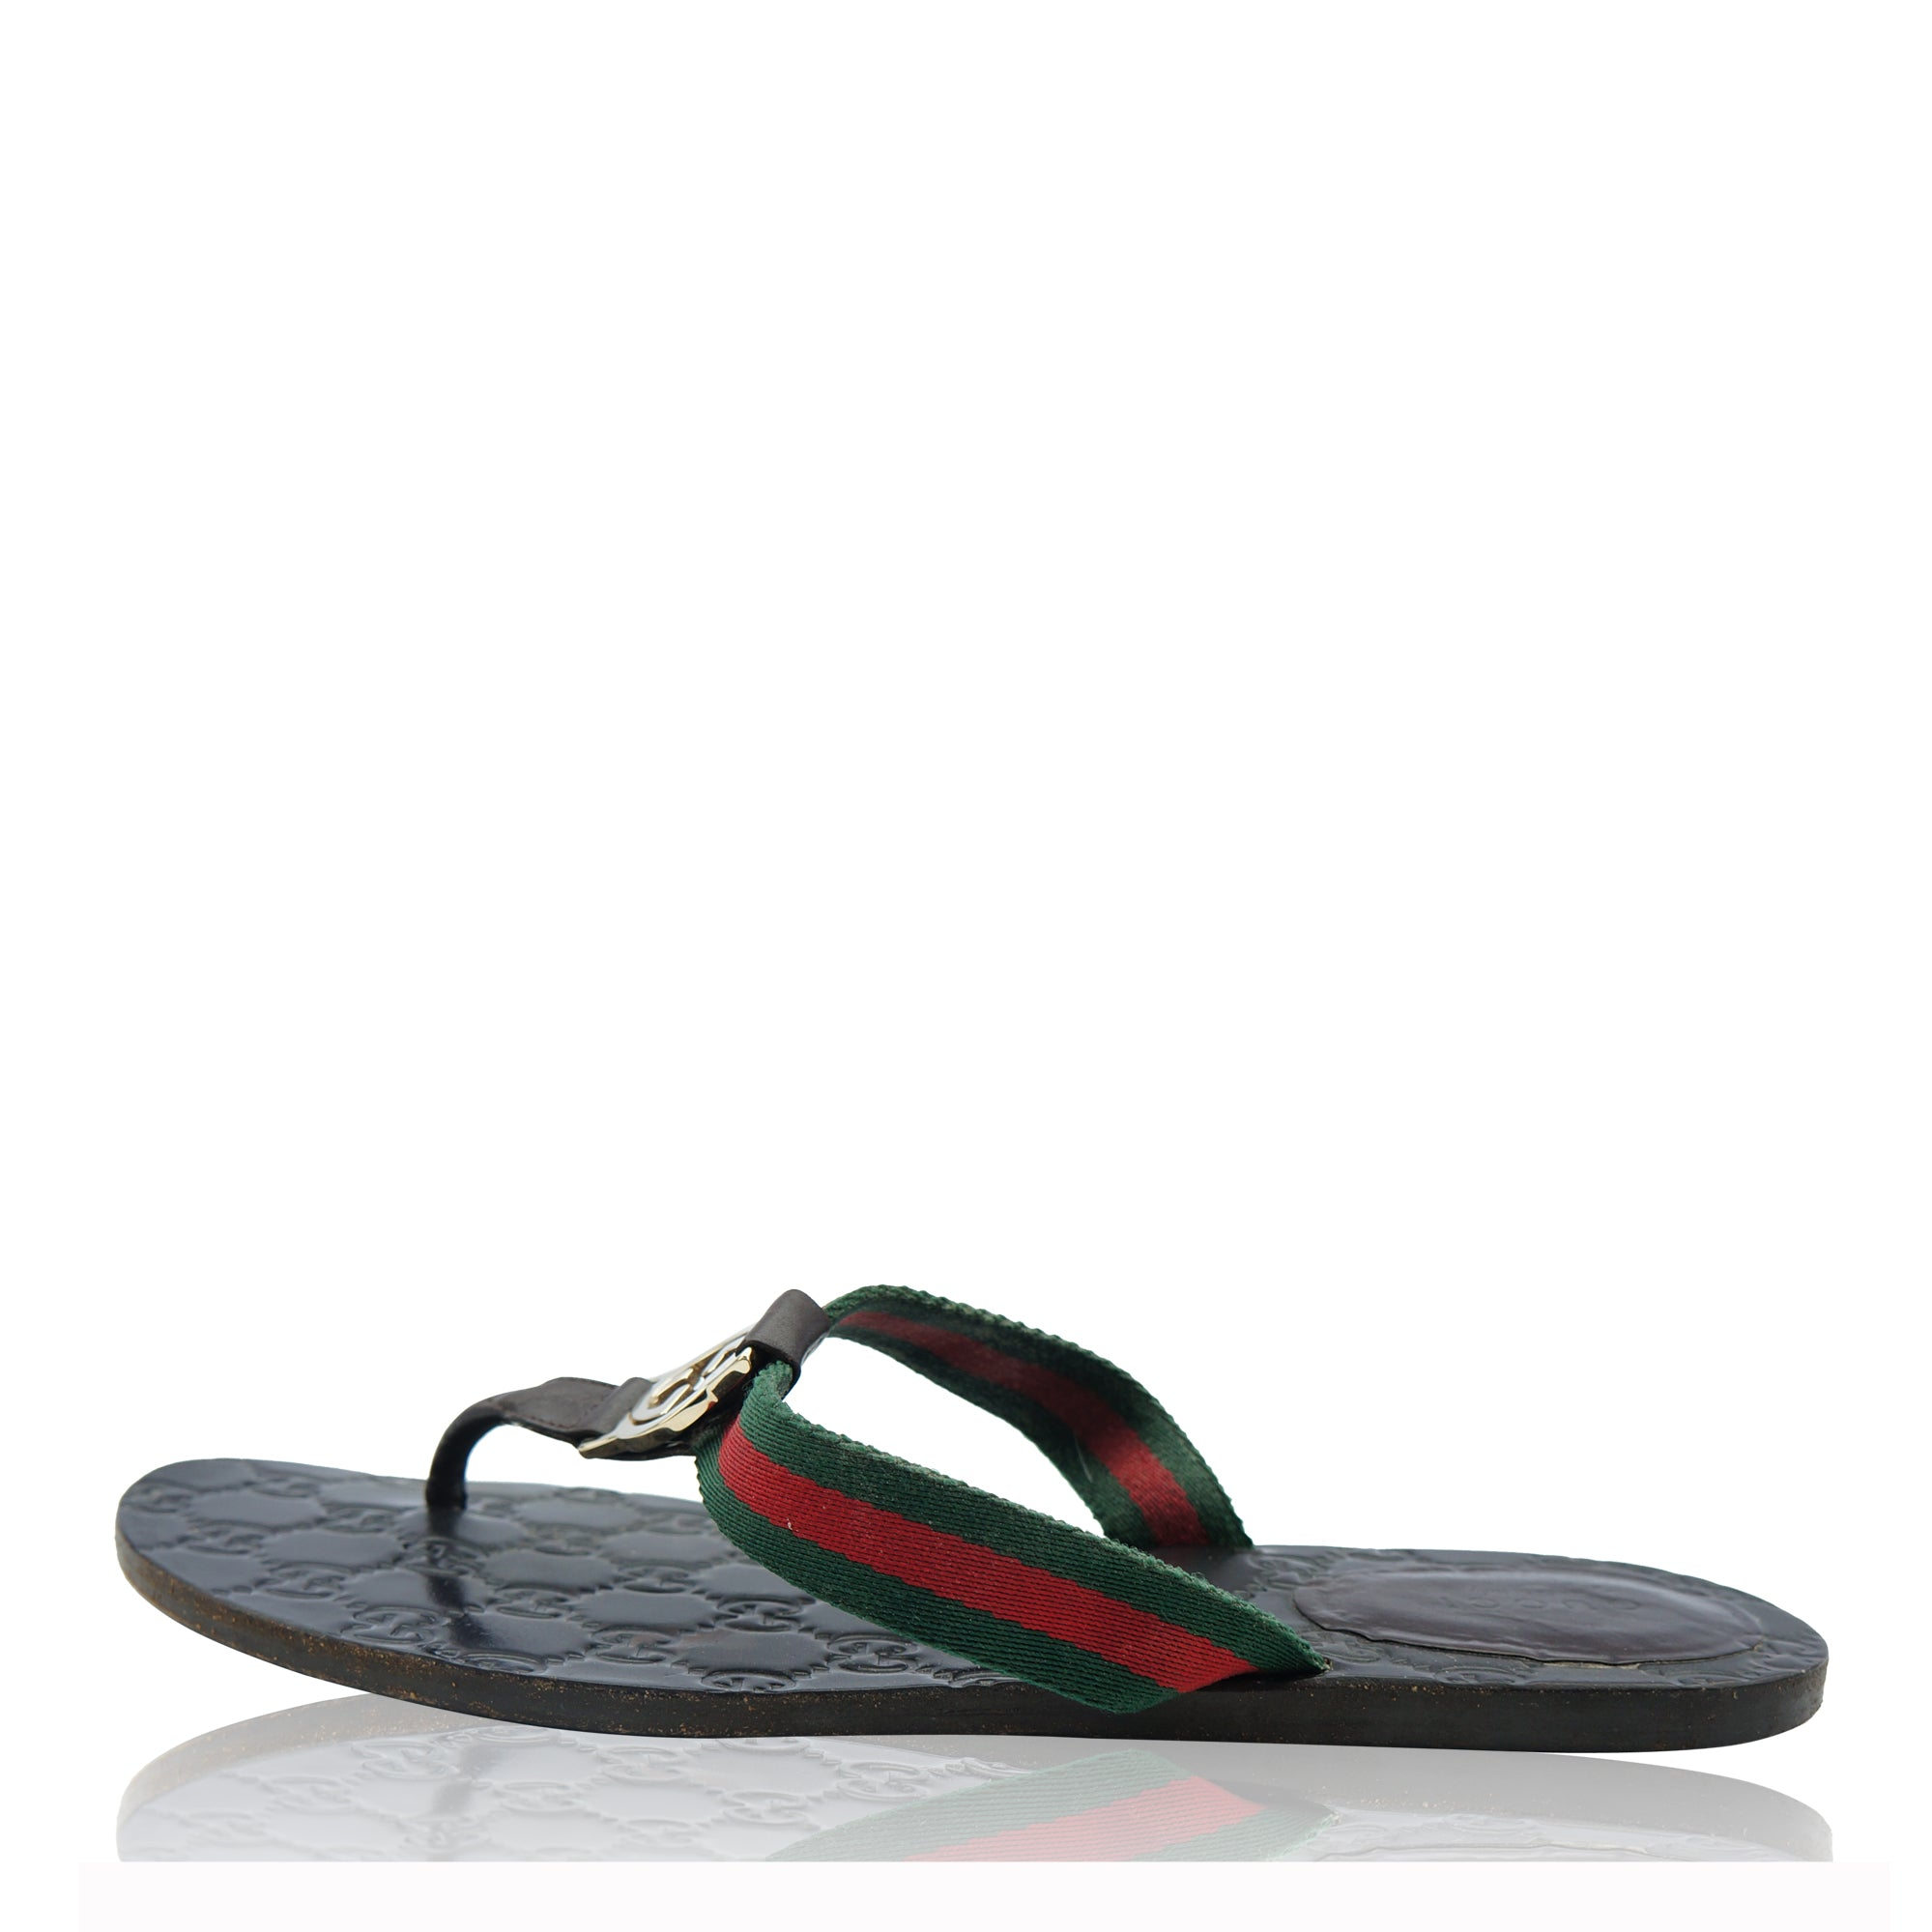 a08096374d217 GUCCI GG WEB LEATHER THONG SANDALS Shop online the best value on authentic  designer used preowned ...